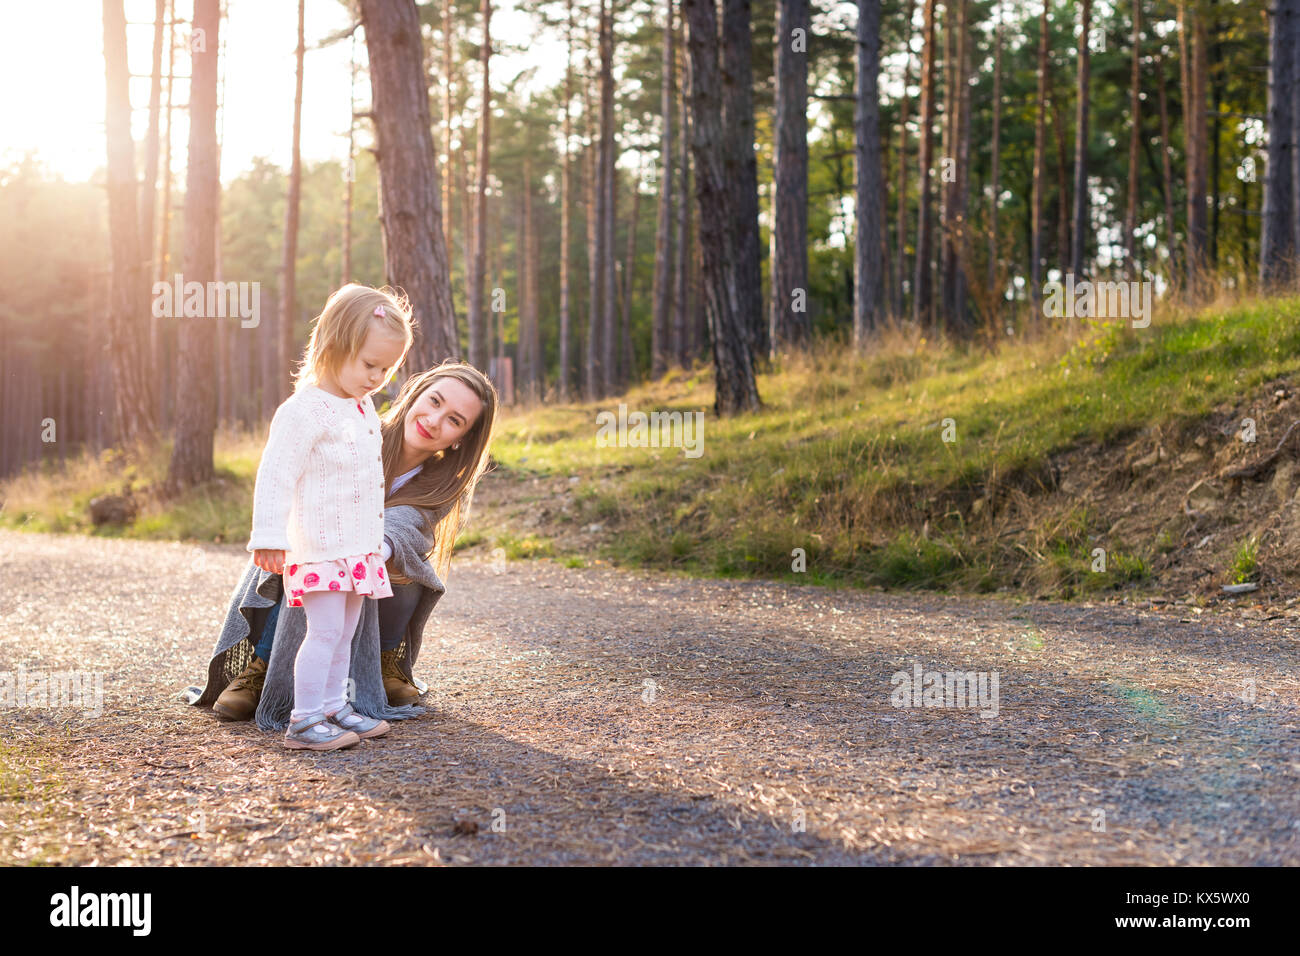 Happy young single mother taking a walk in a park with her toddler daughter. Family smiling and having fun outdoors. - Stock Image